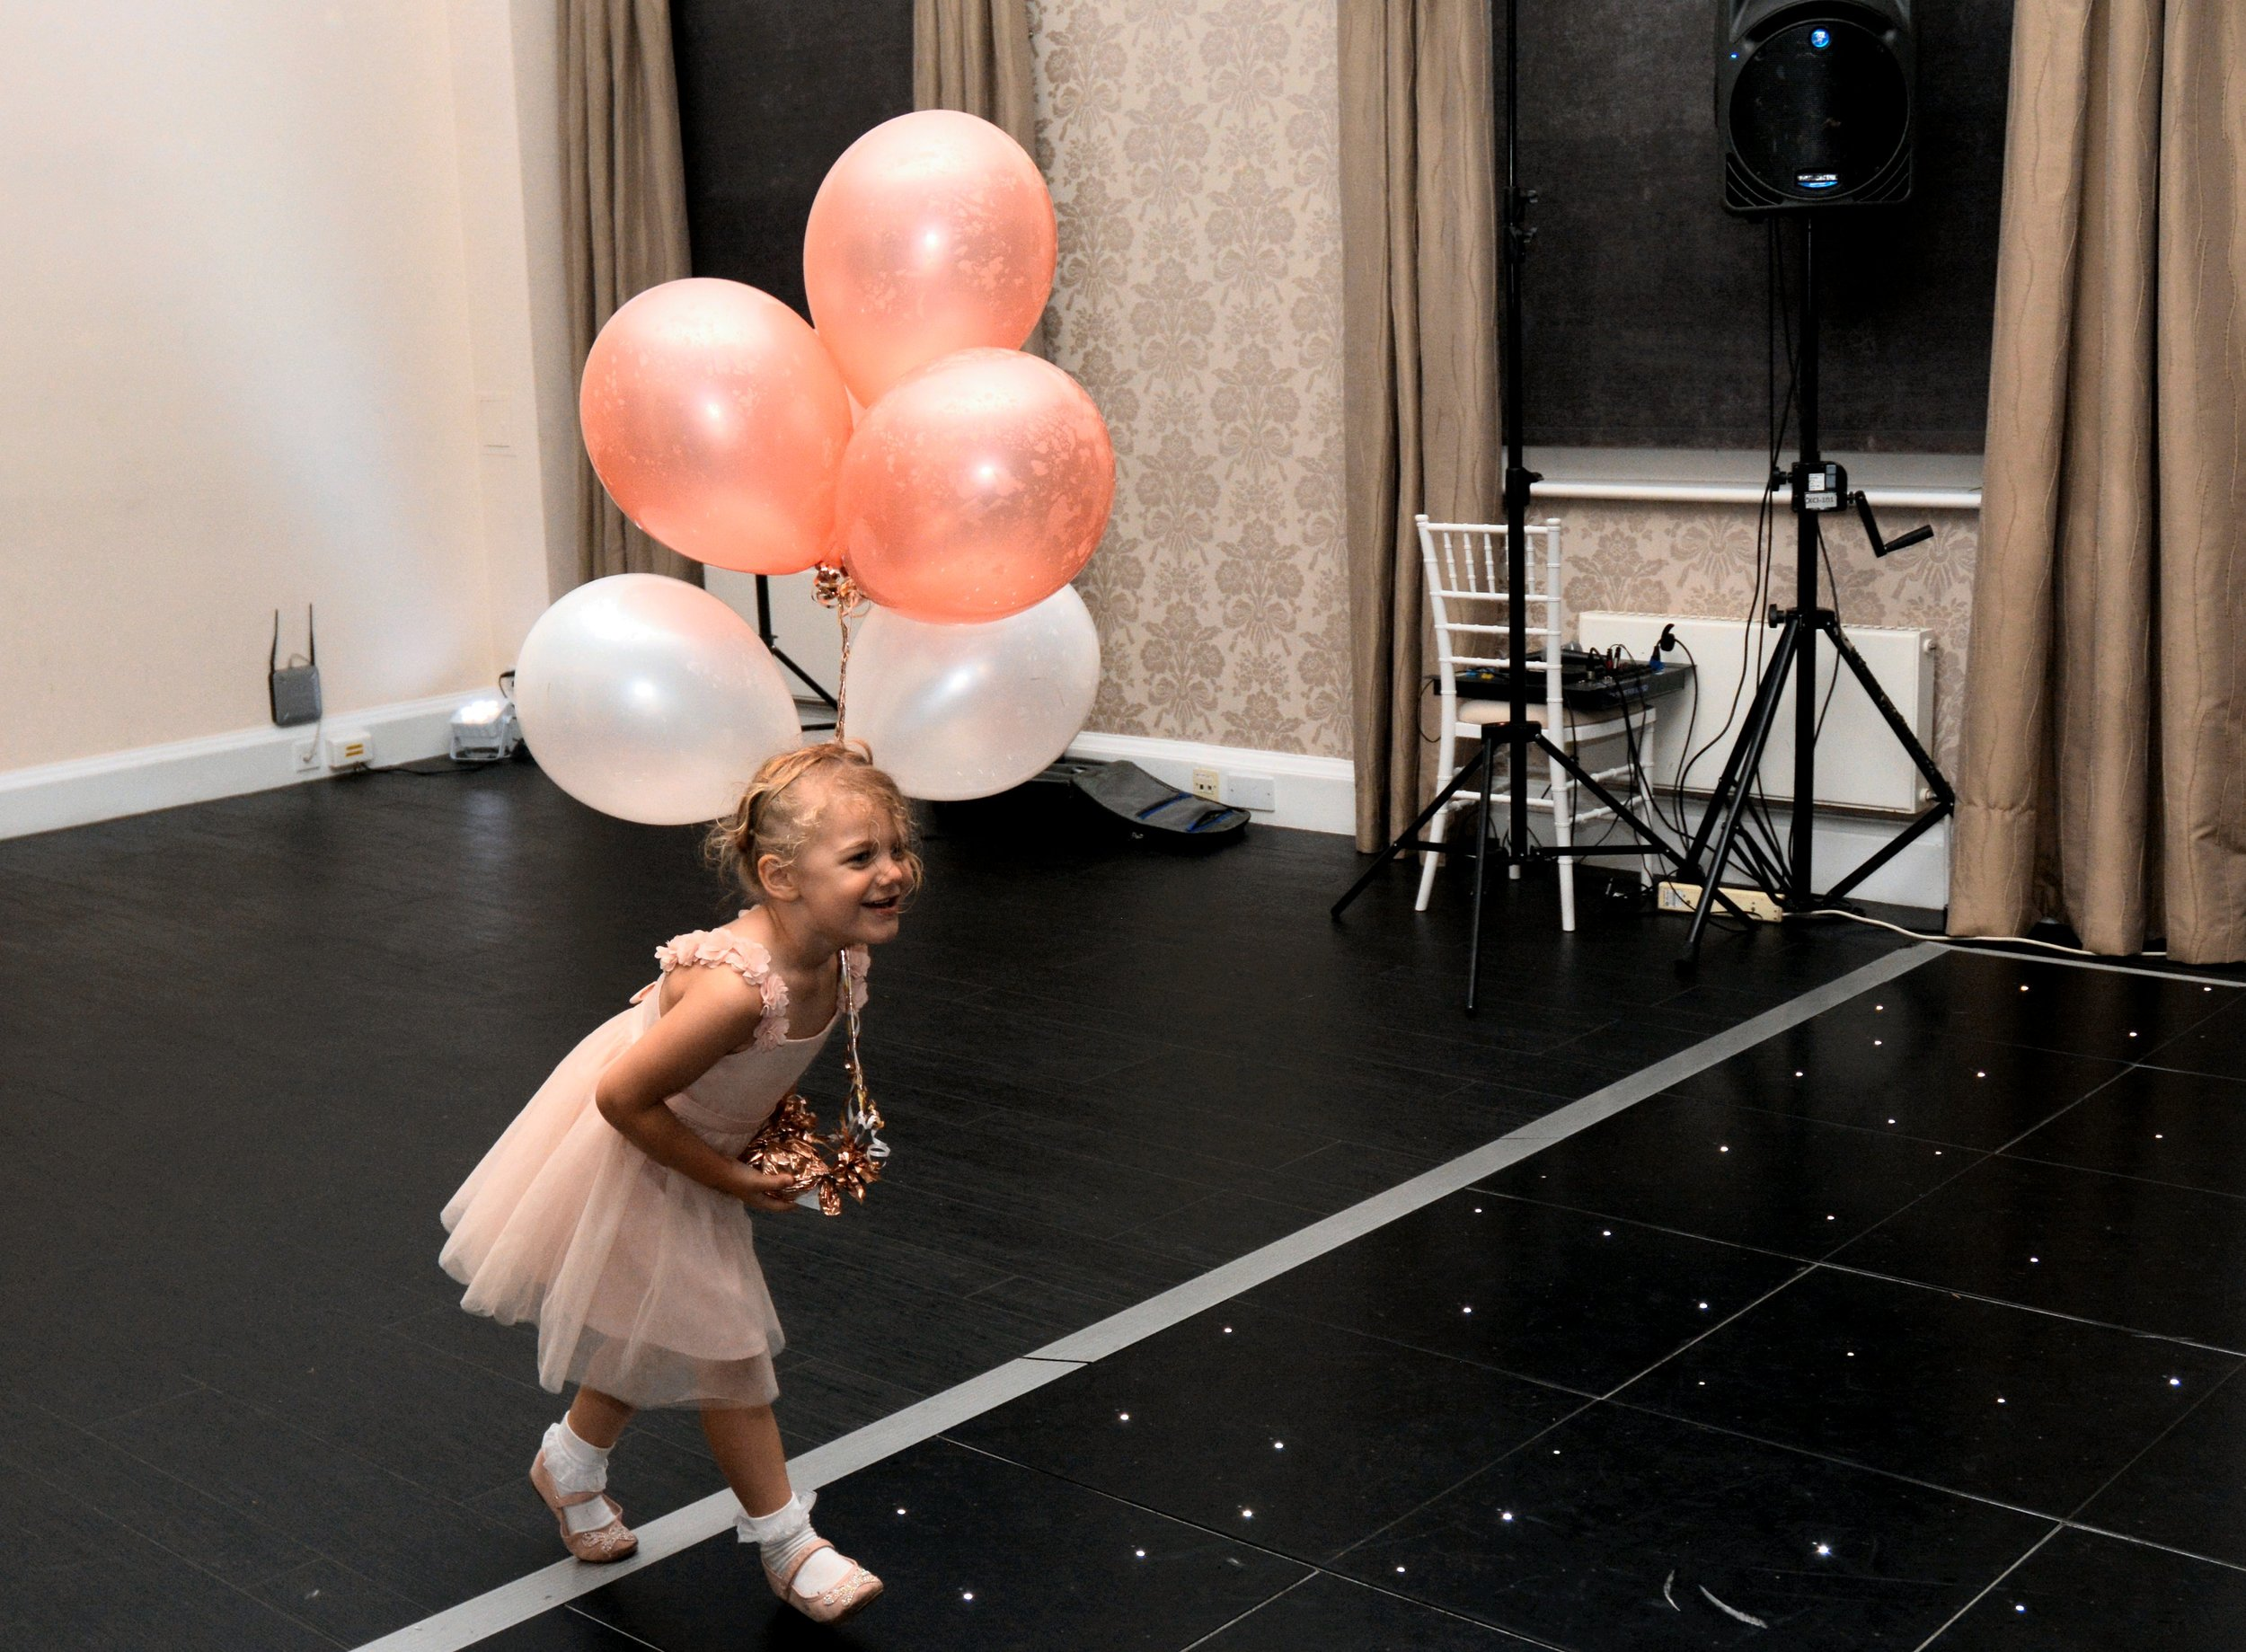 Wedding photo ideas: children on the wedding dancefloor